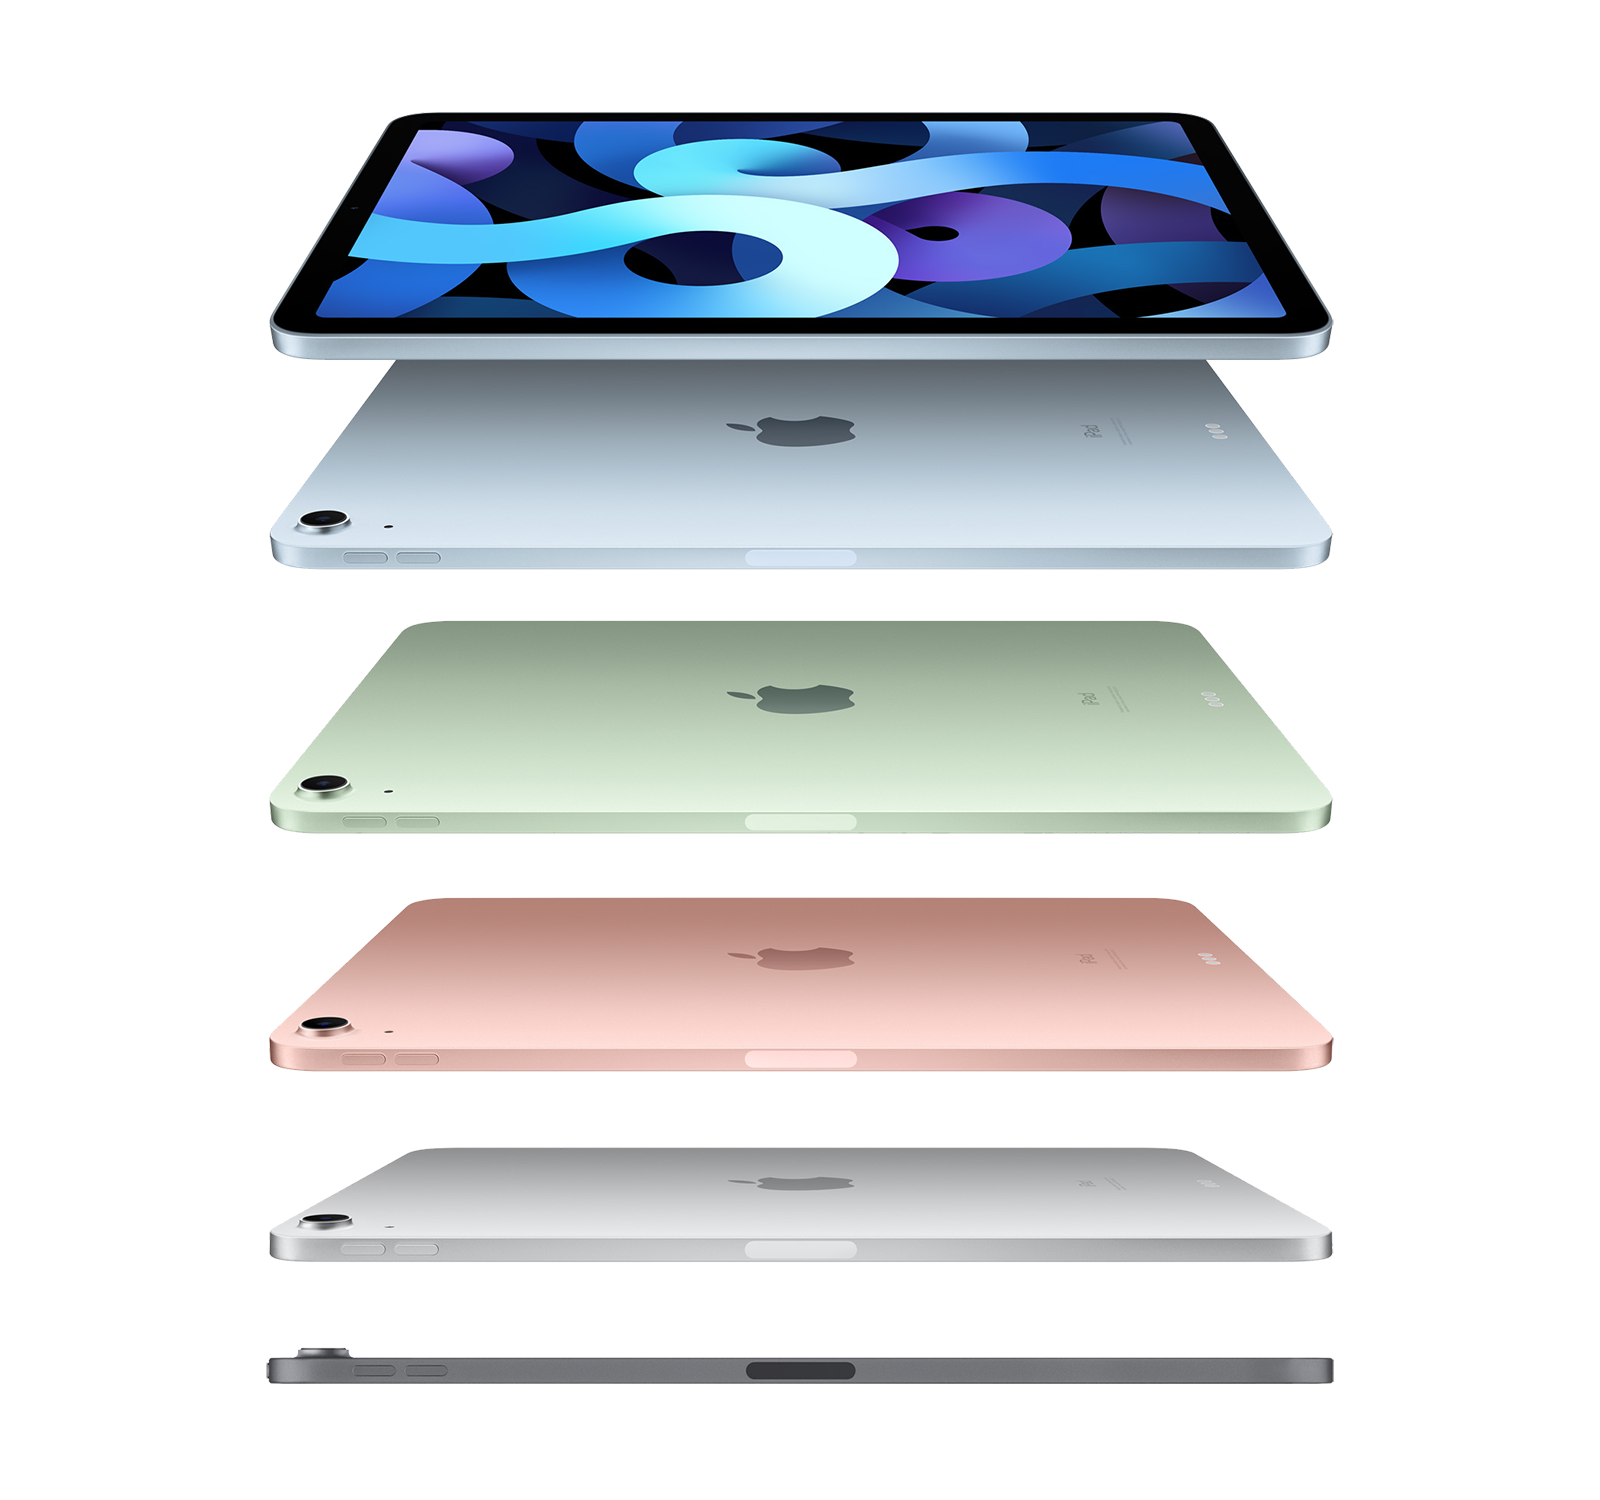 Best iPad Air 4 price in Sky Blue, Rose Gold, Green, Silver and Space Gray